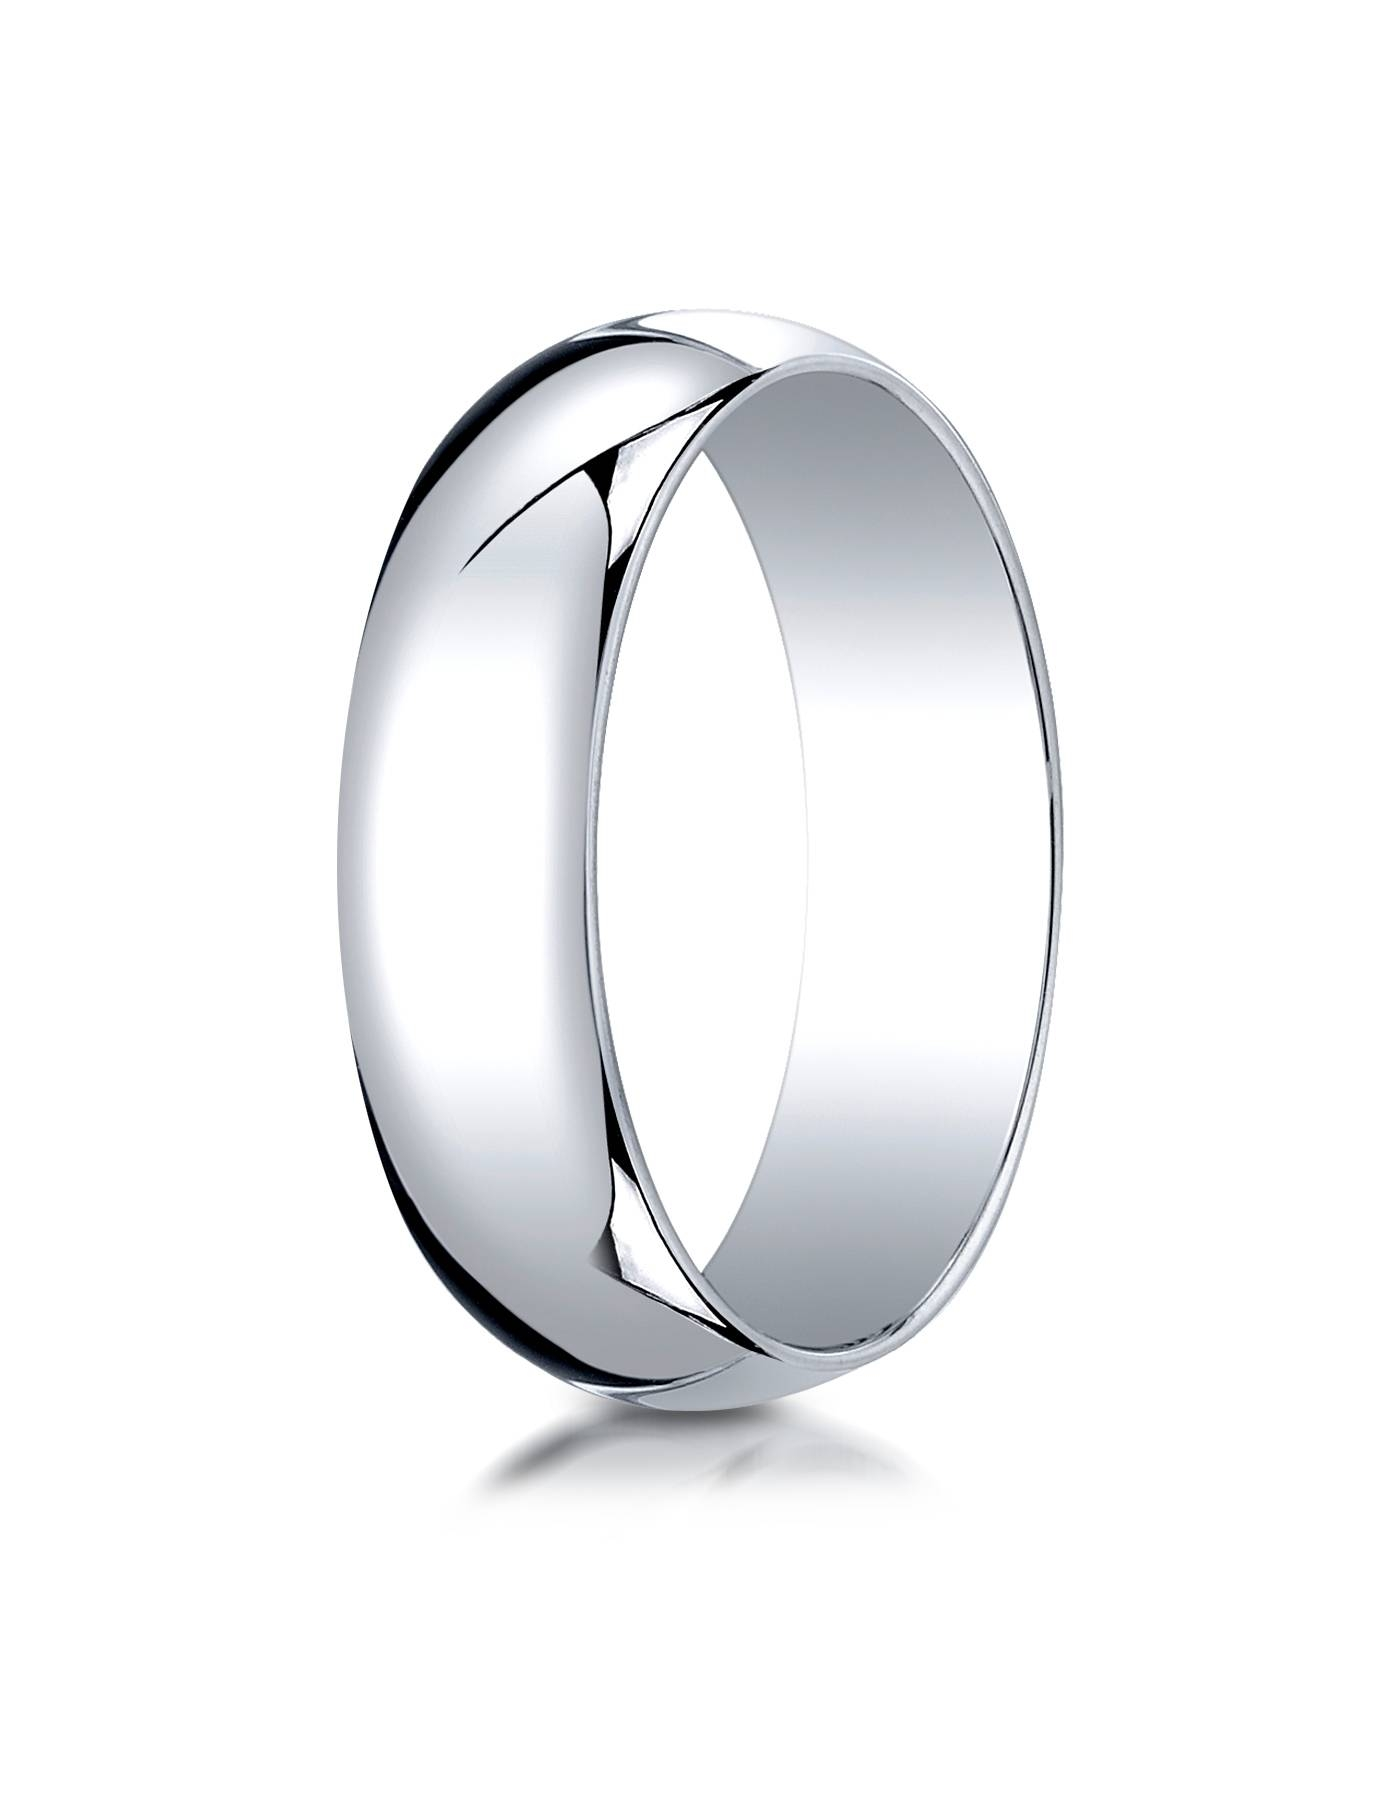 Mens Wedding Bands | Israel Diamond Supply | Wholesale Diamonds With Regard To Stuller Wedding Bands (View 5 of 15)